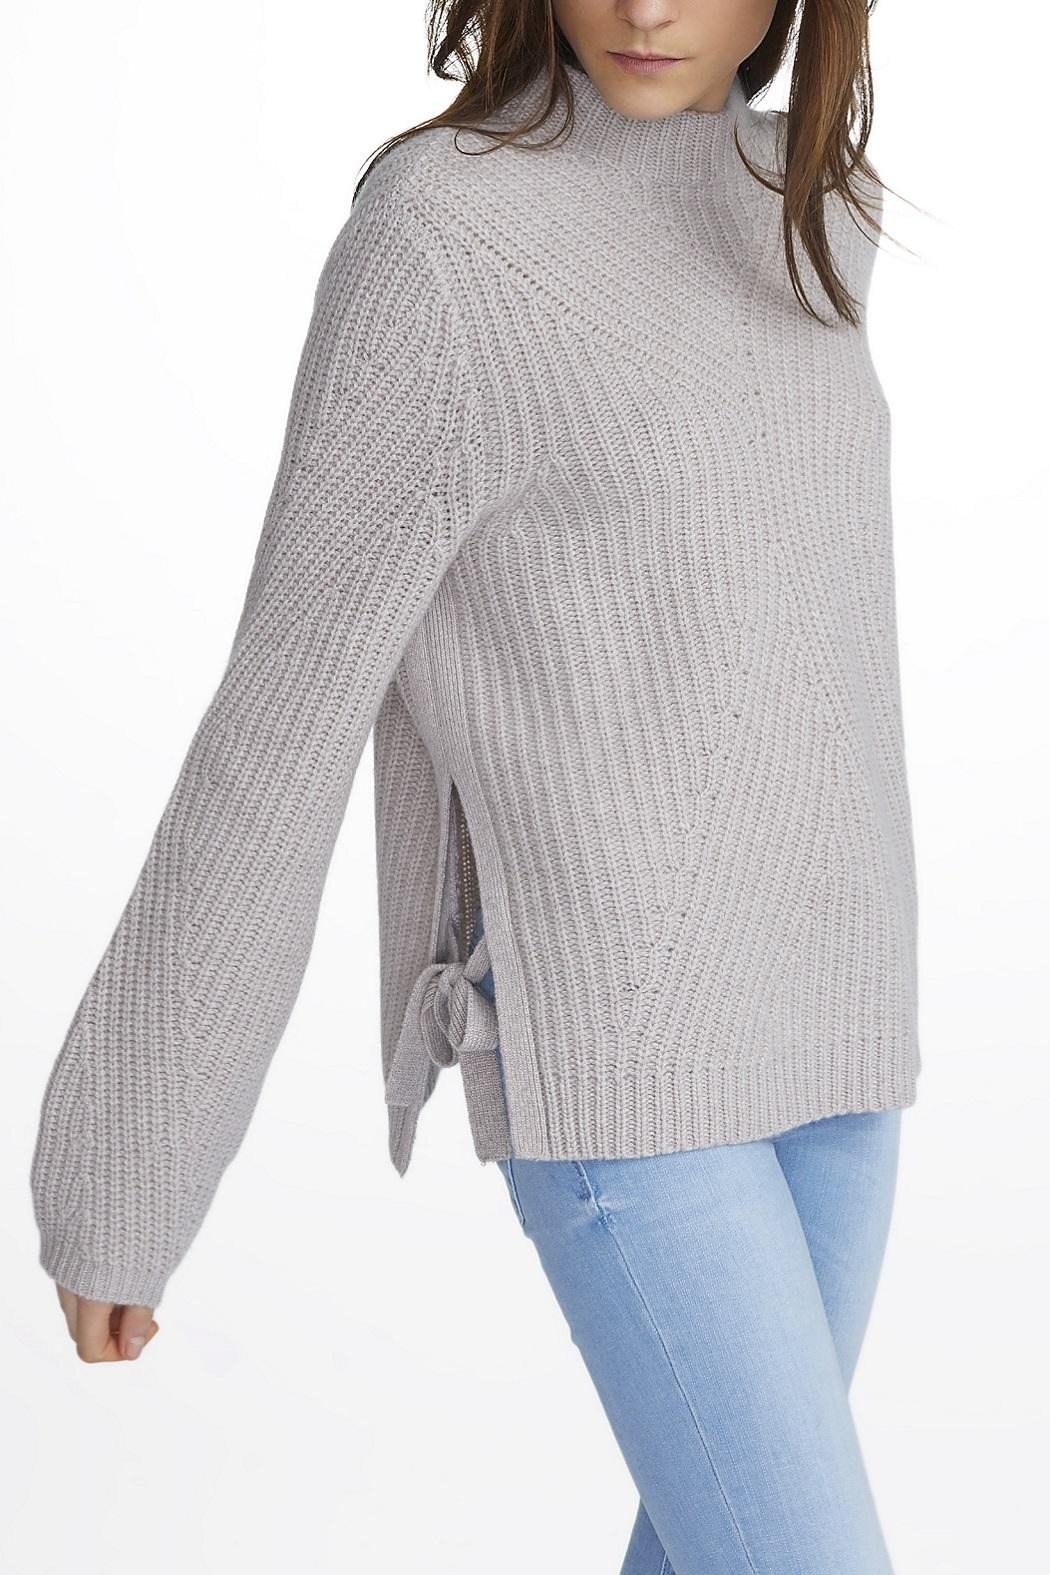 White + Warren Cashmere Mock Neck Sweater - Front Cropped Image